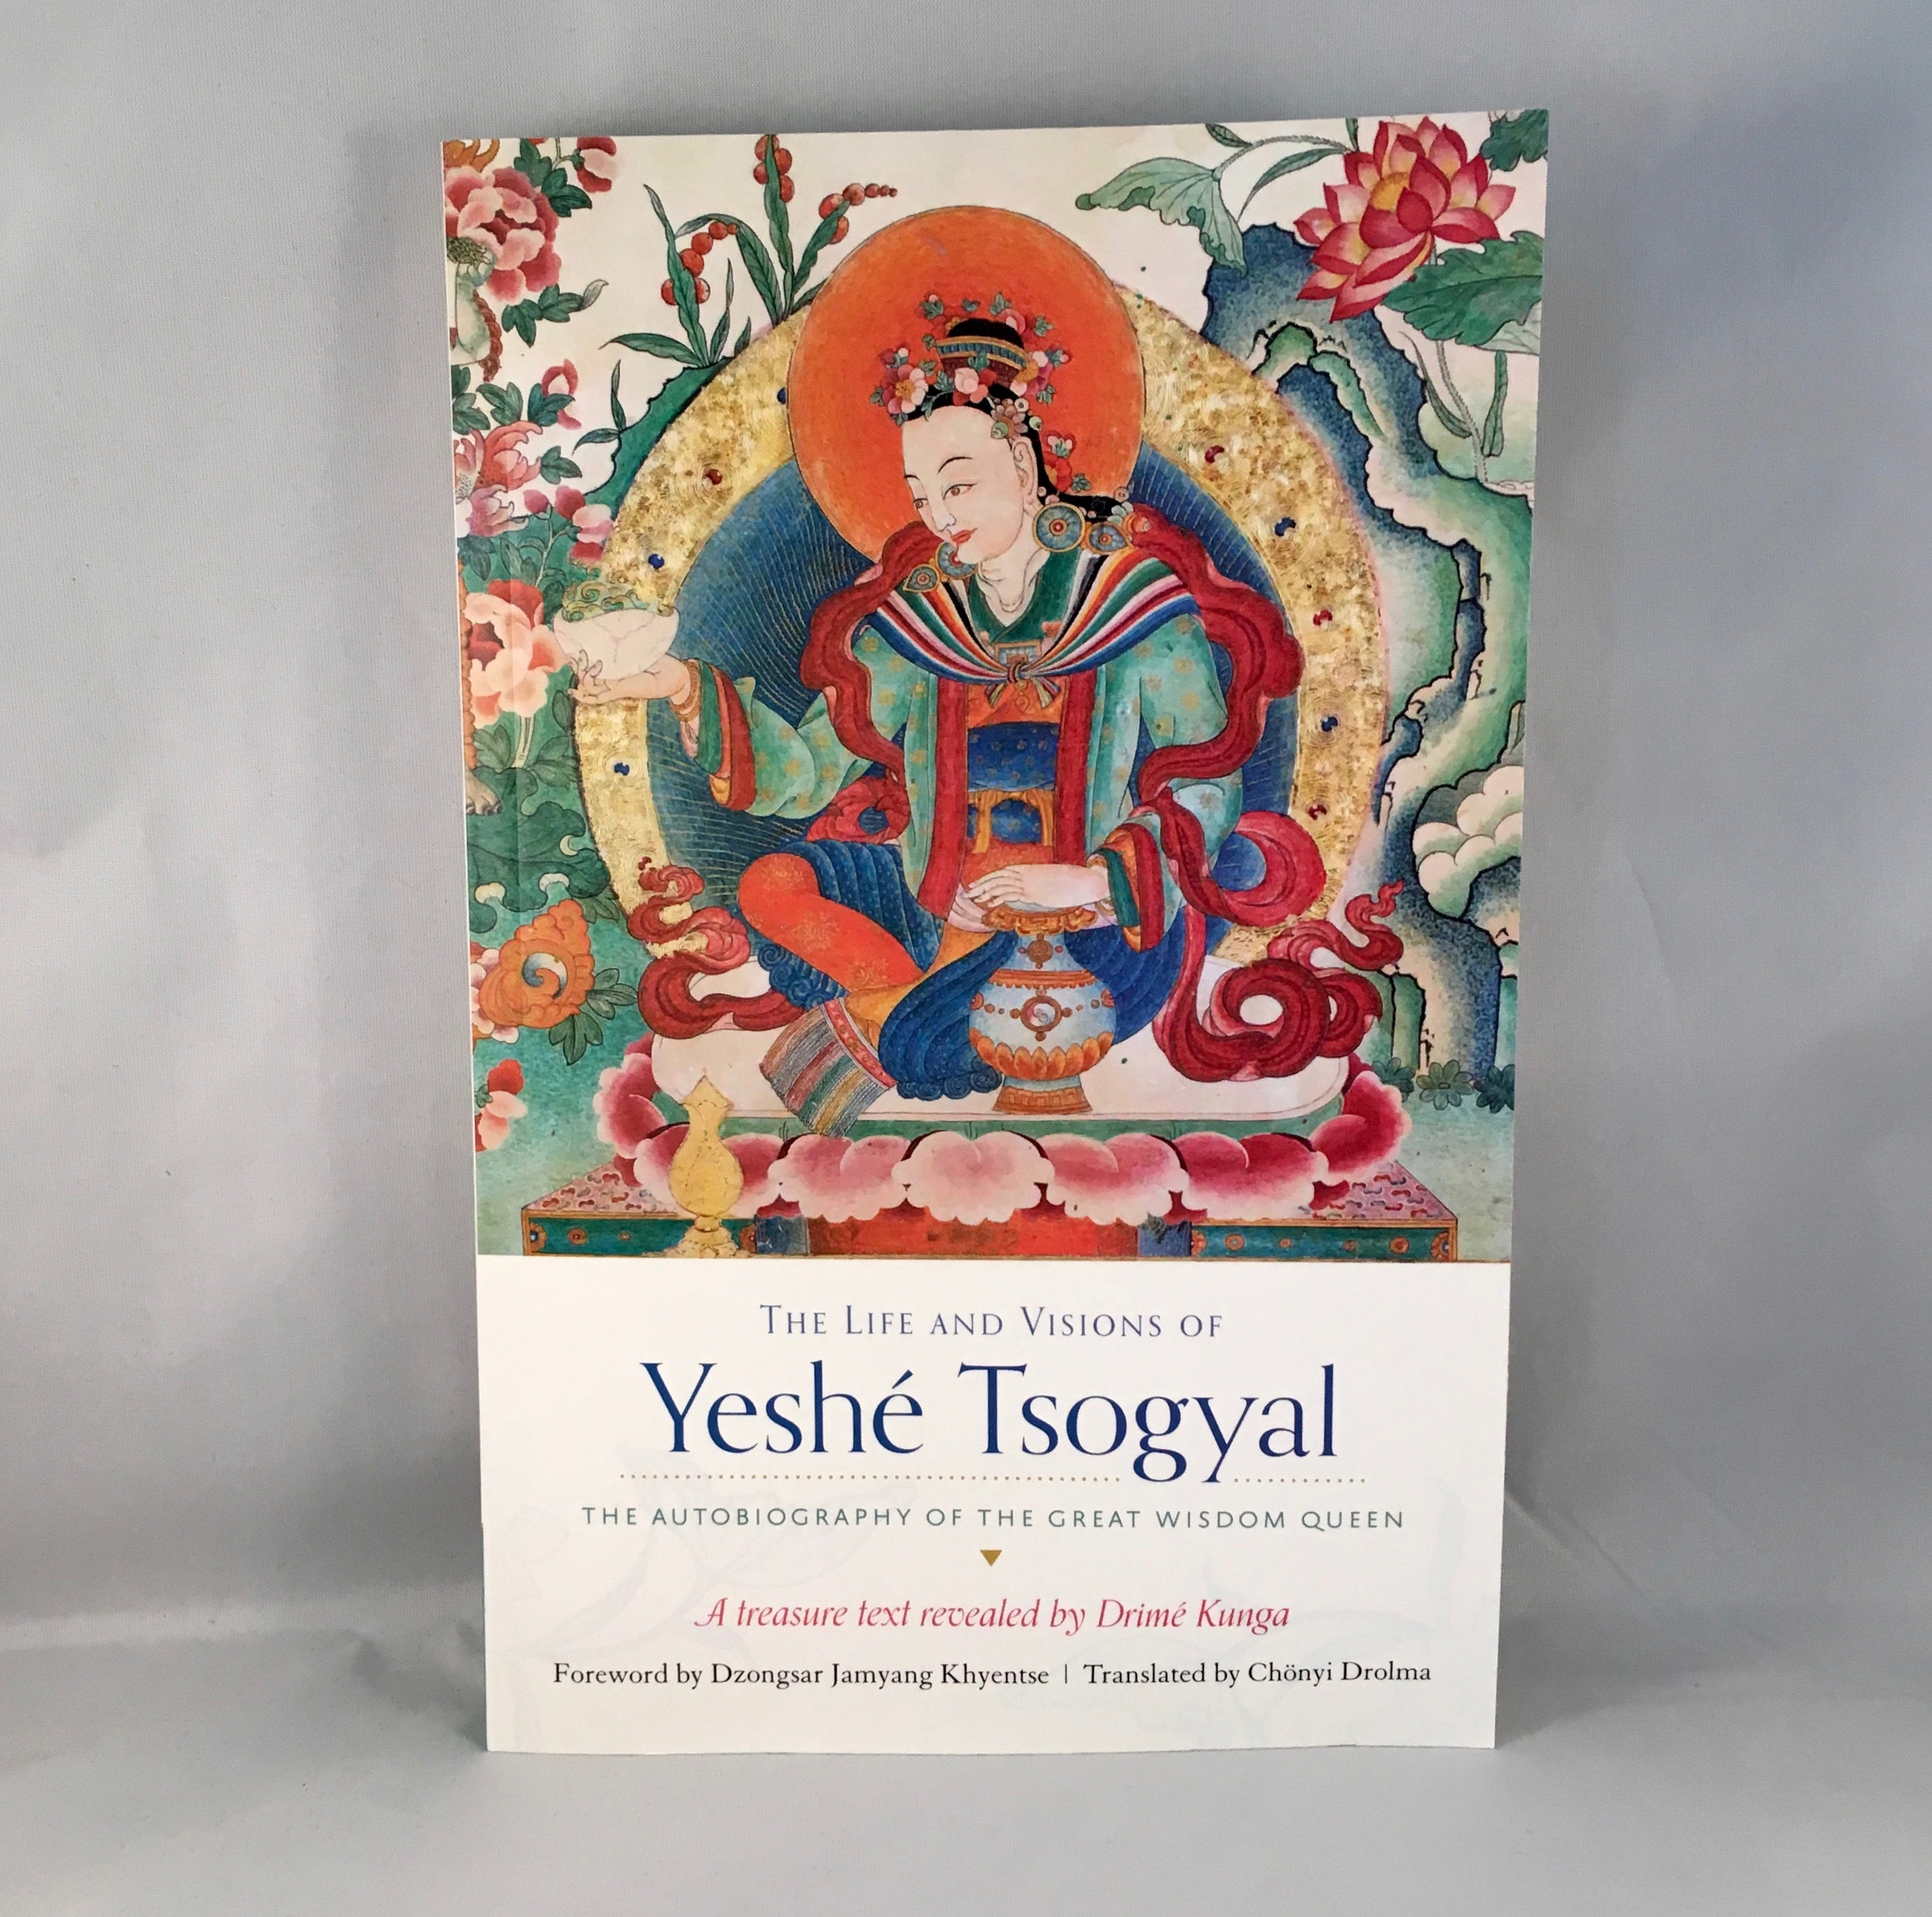 The Life and Visions of Yeshe Tsogyal by Drime Kunga and Yeshe Tsogyal